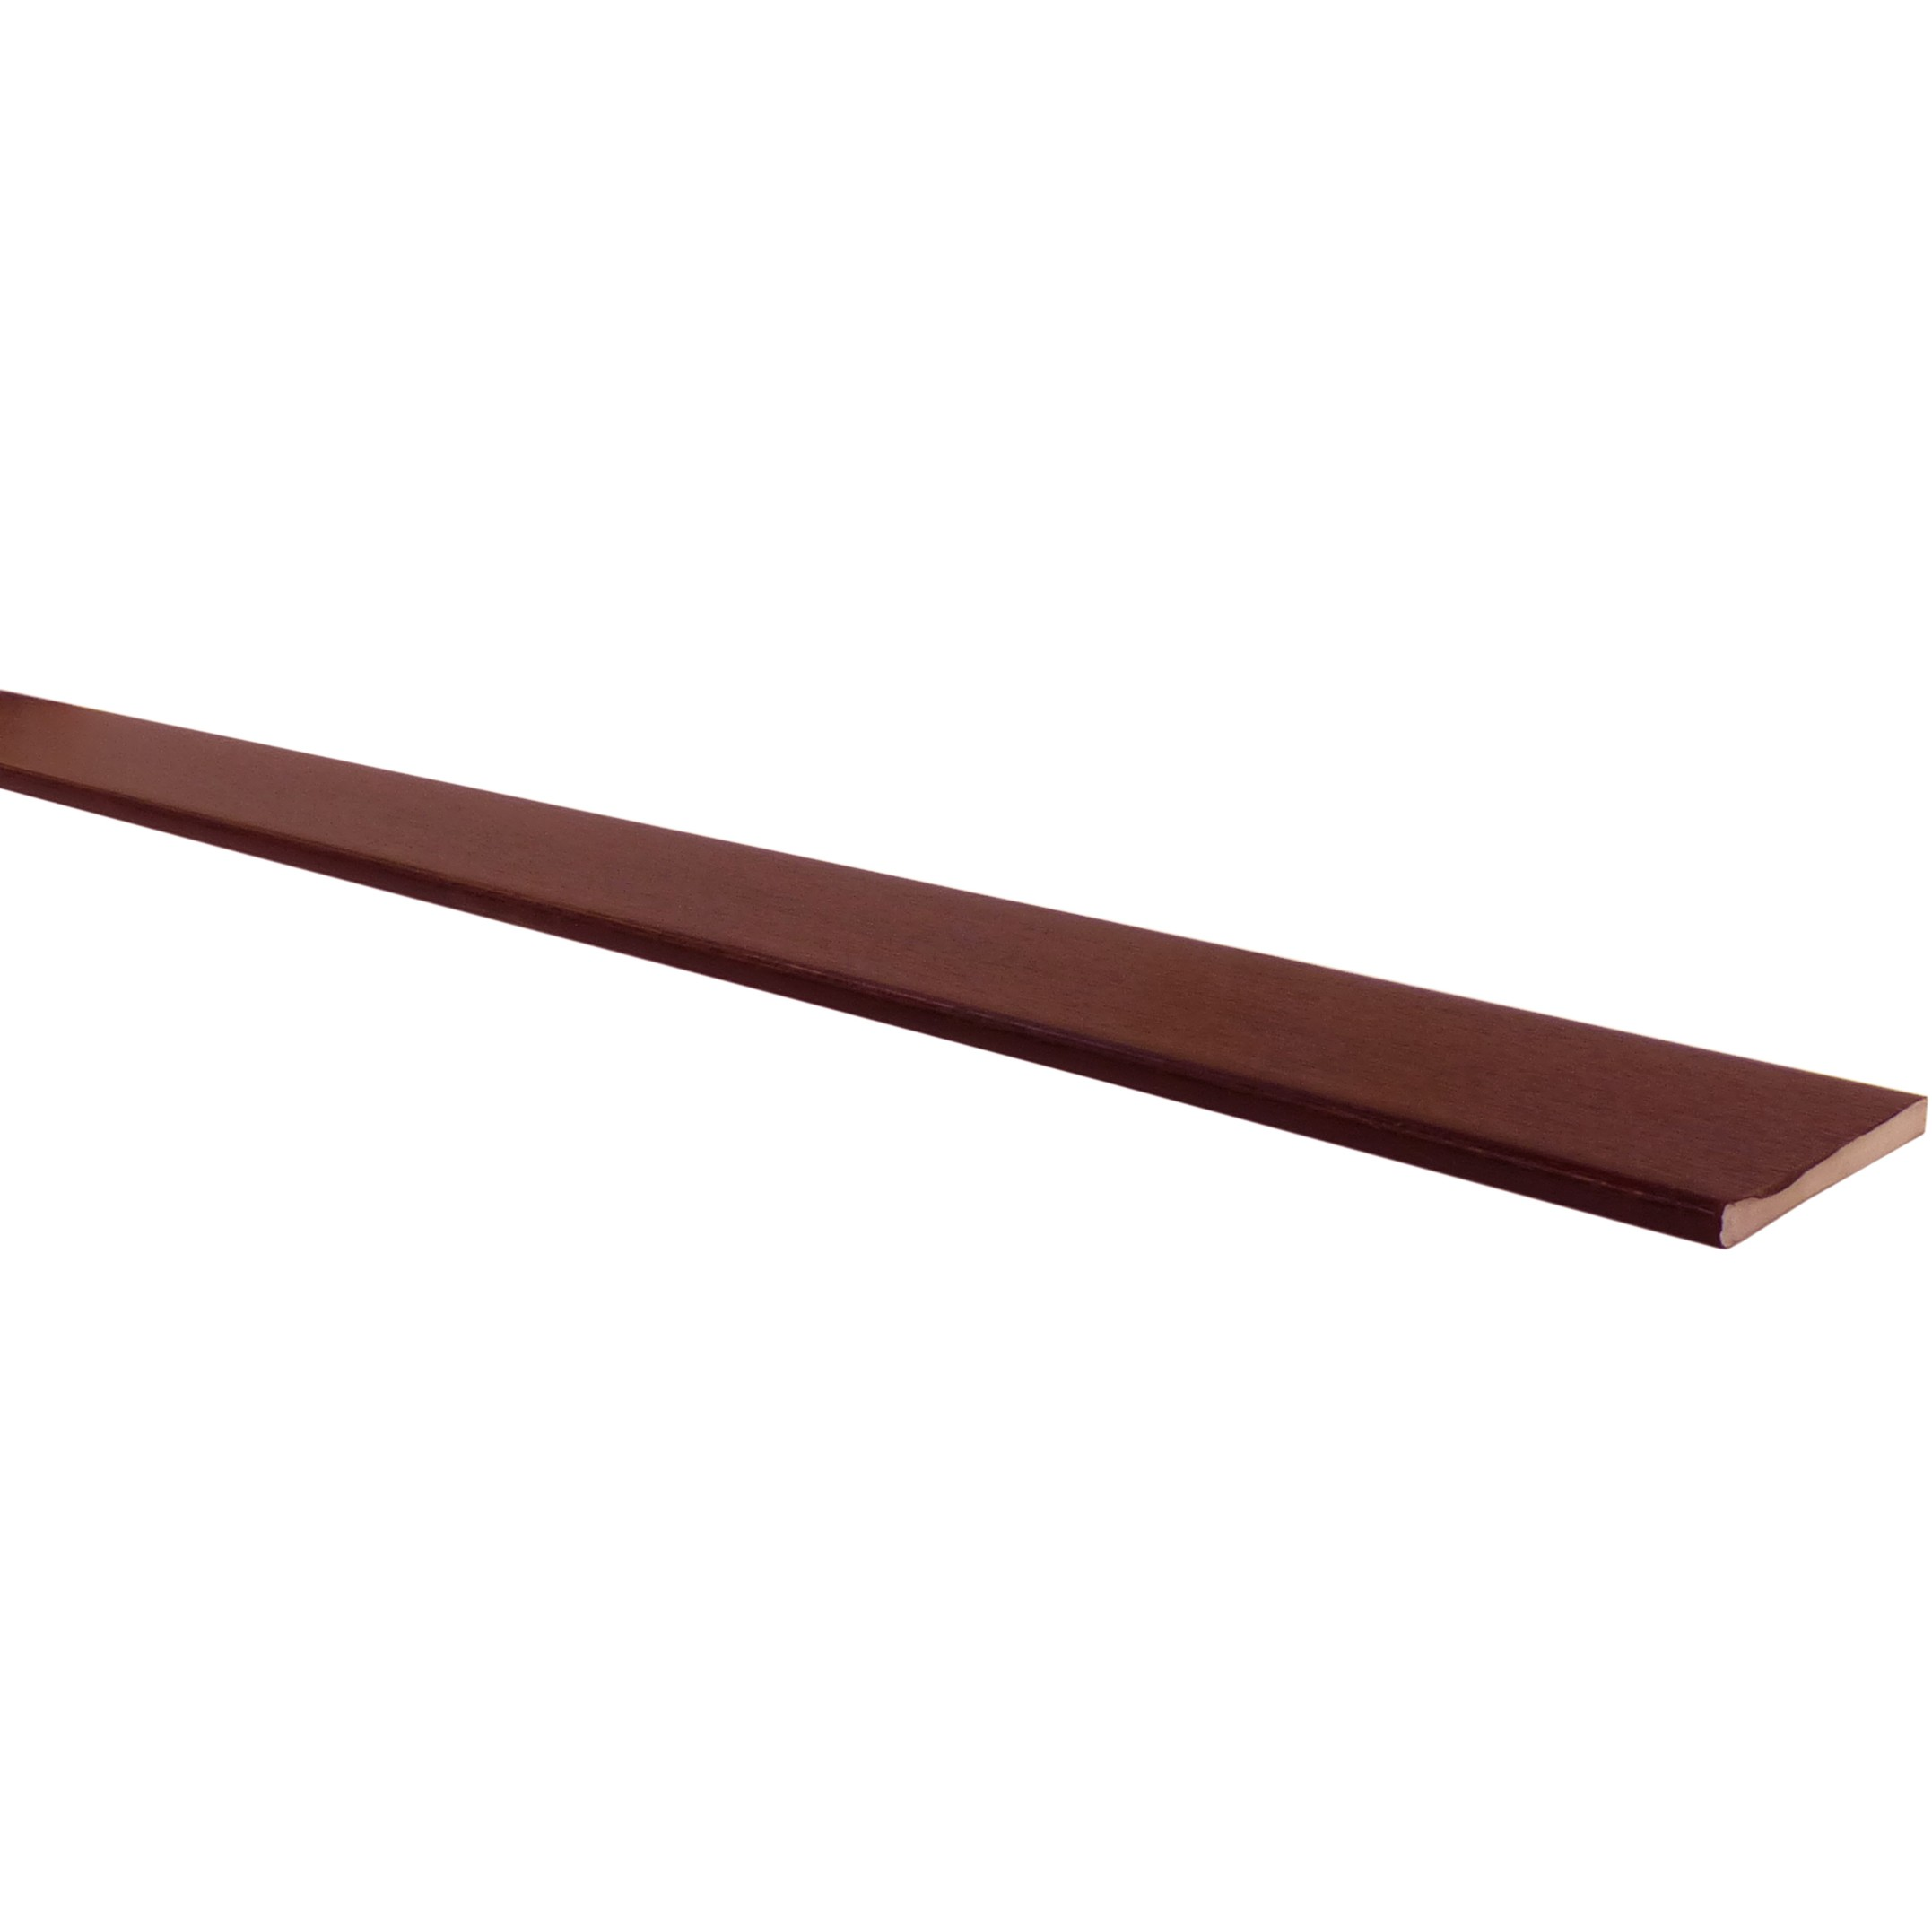 Freefoam 10mm Solid Soffit Board - Woodgrain Rosewood, 150mm, 5 metre